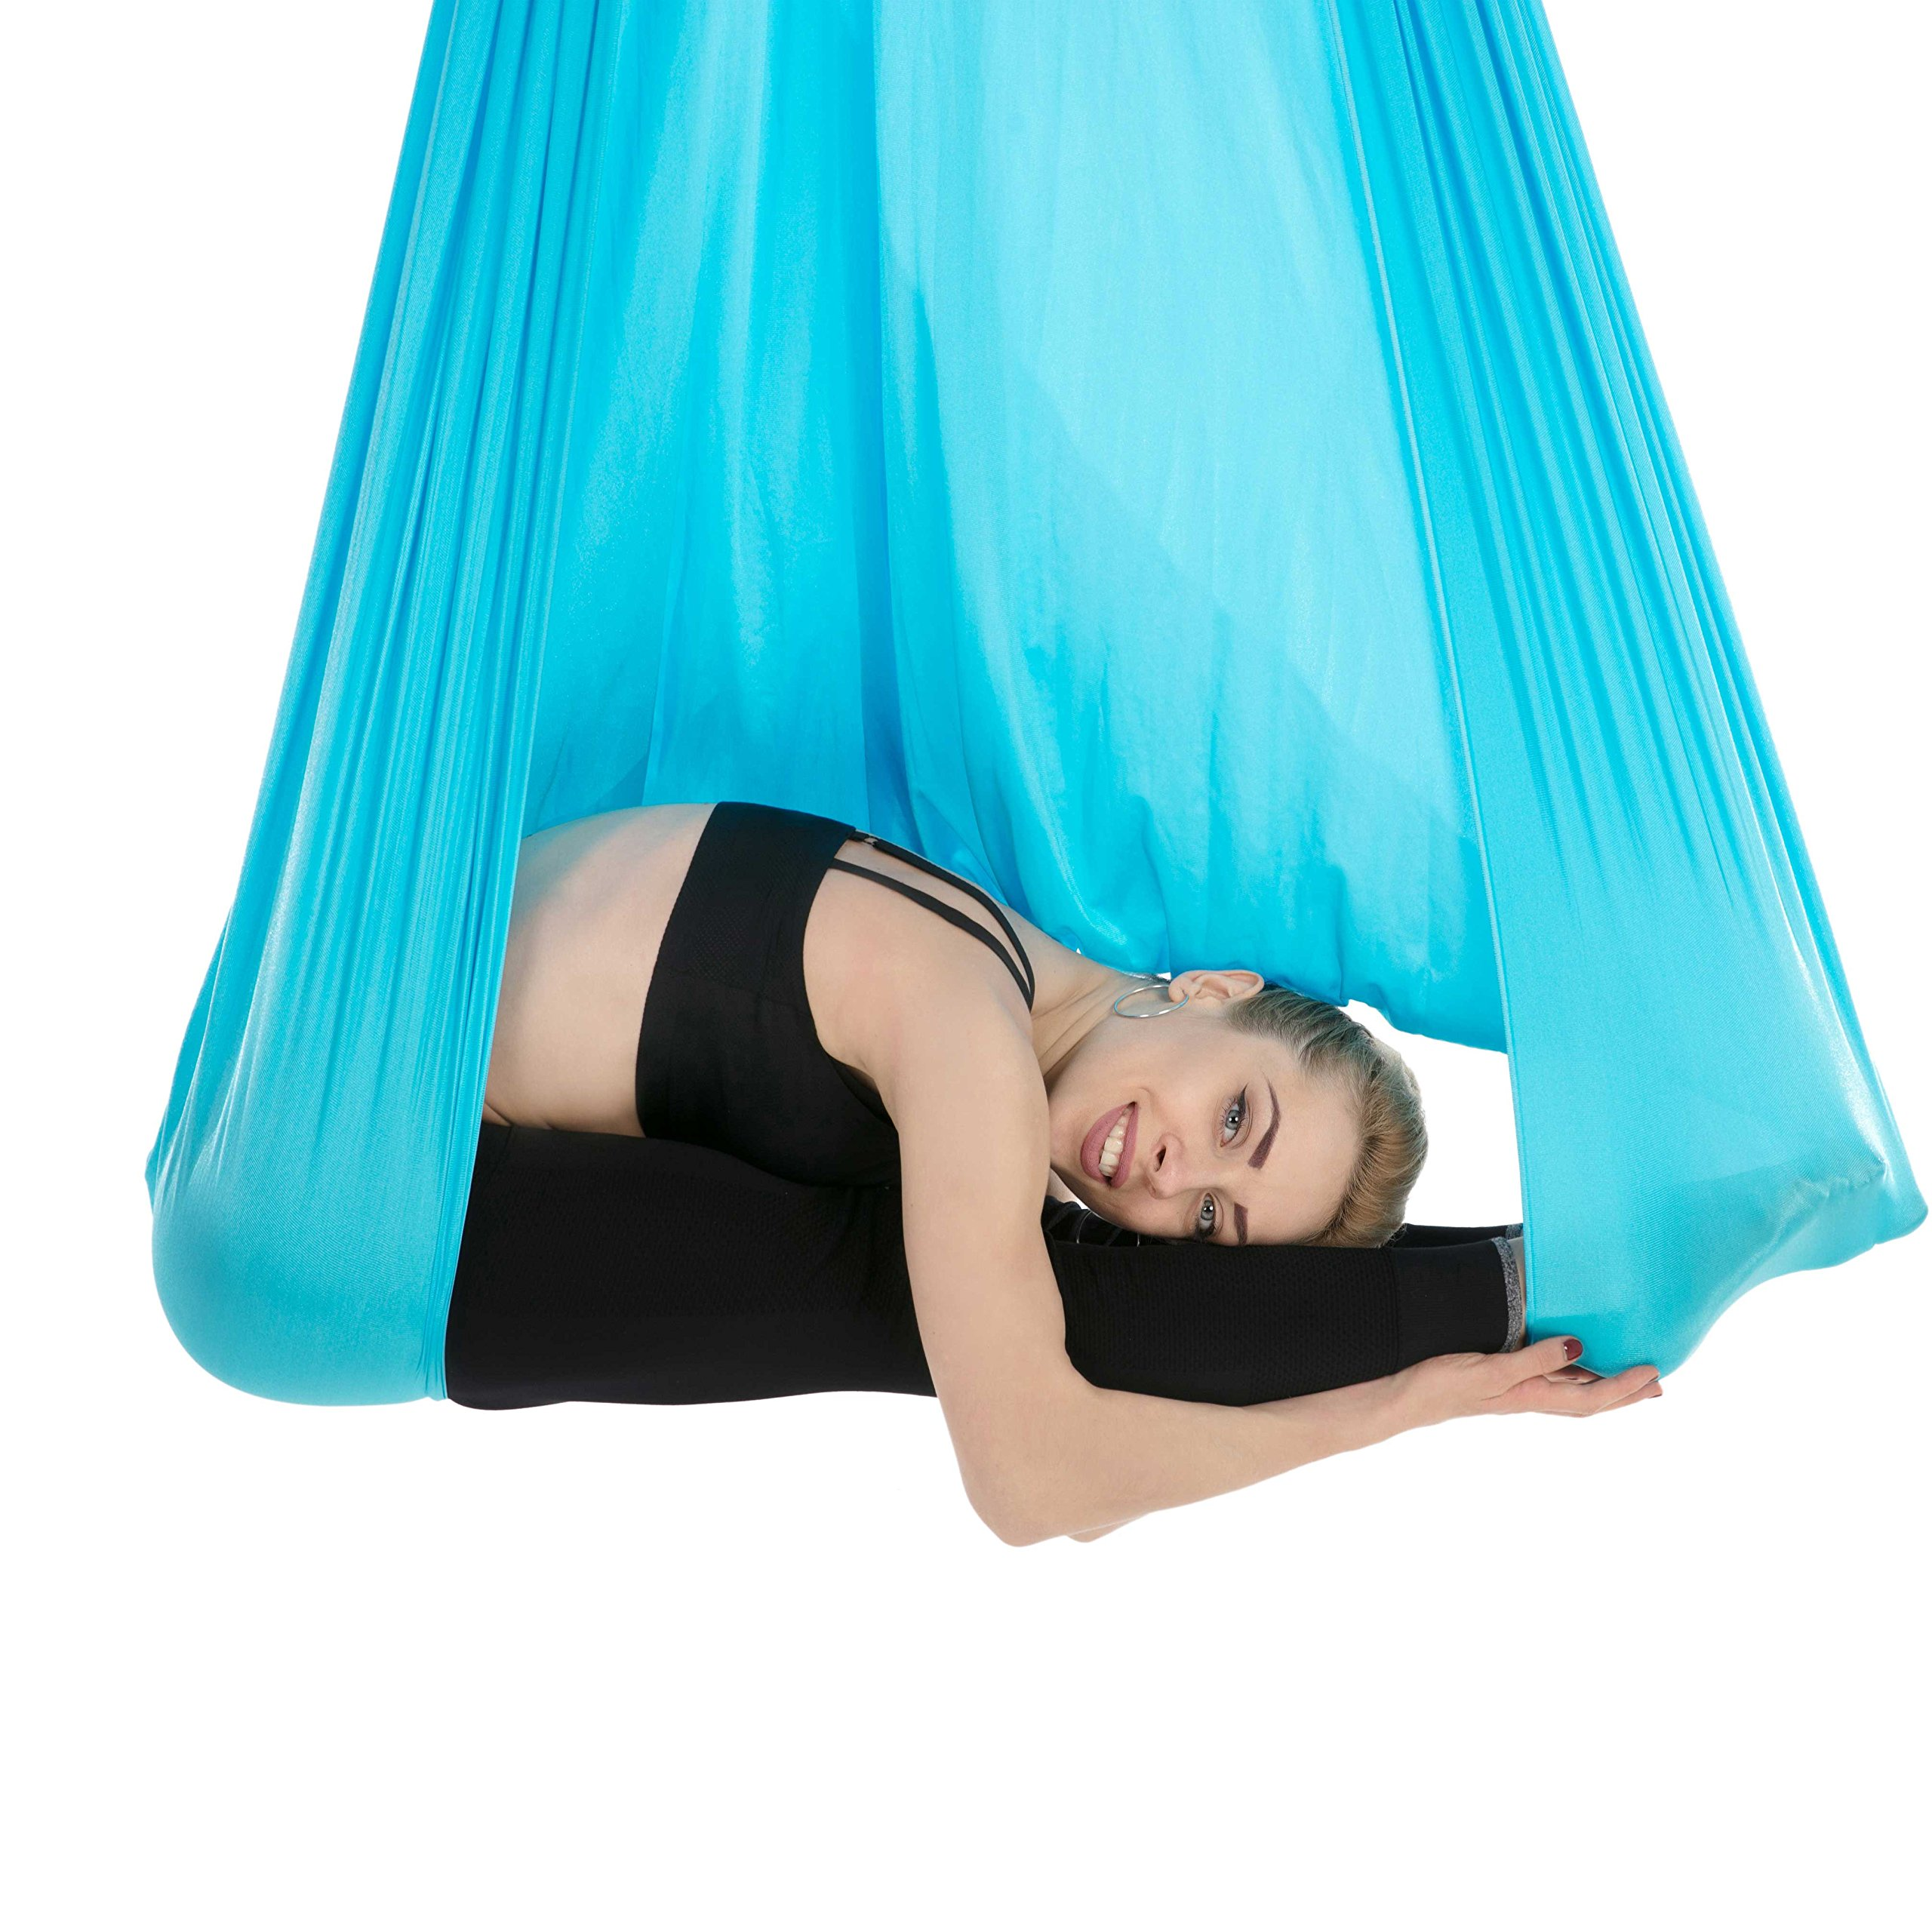 Tofern Aerial Yoga Hammock Kit 5.5 Yards Antigravity Trapeze Inversion Exercise Home Indoor Outdoor Yoga Silk Swing Sling Set with Hardware Ceiling Hooks Bolts 2 Extension Straps, Sky Blue by Tofern (Image #3)